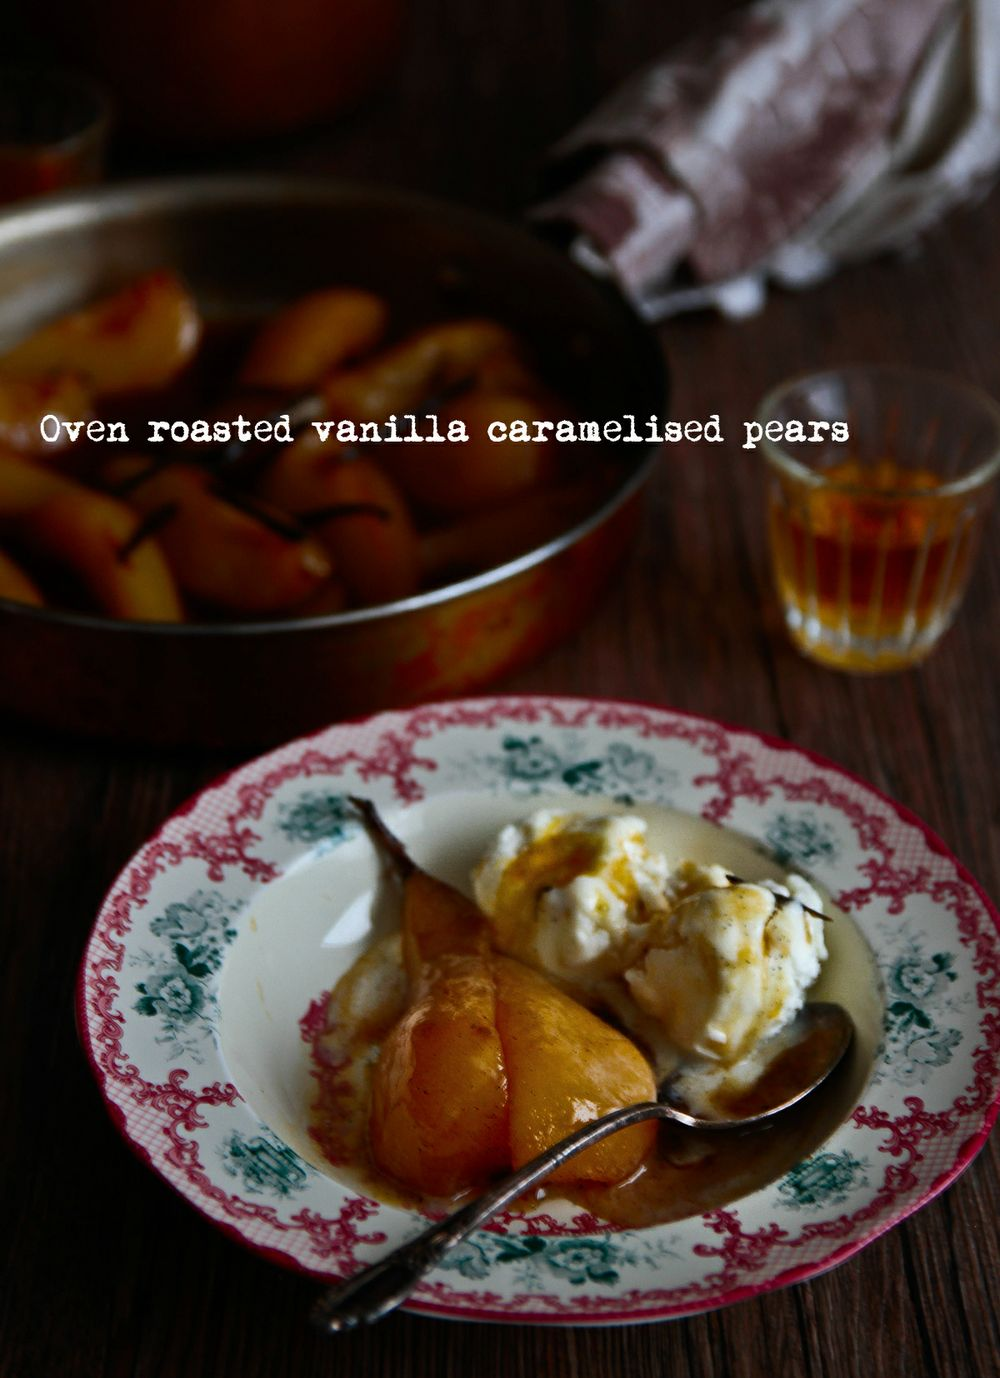 n2-caramelised-pears-2-3